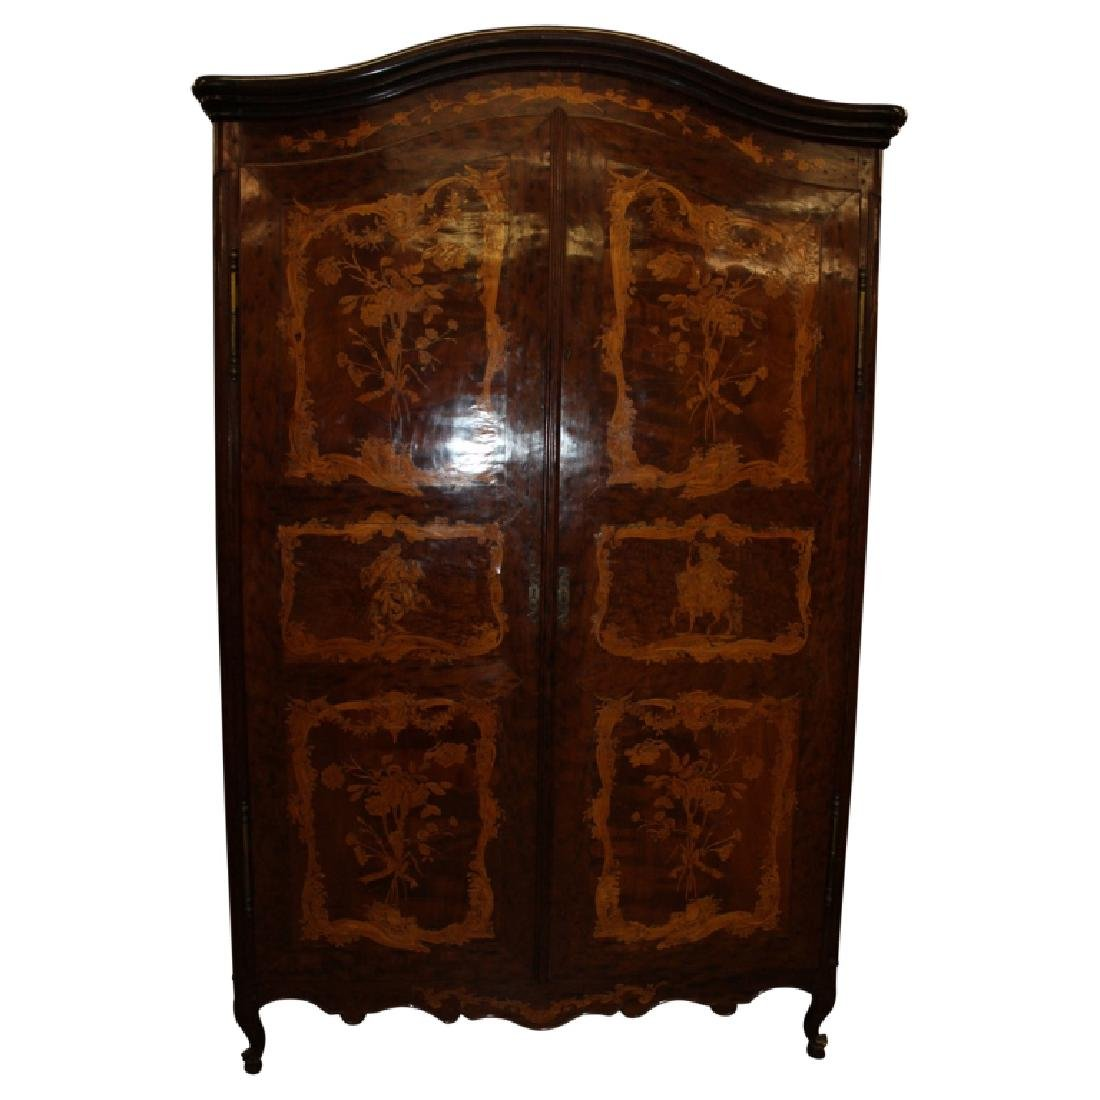 Large Ornately Inlaid Wardrobe